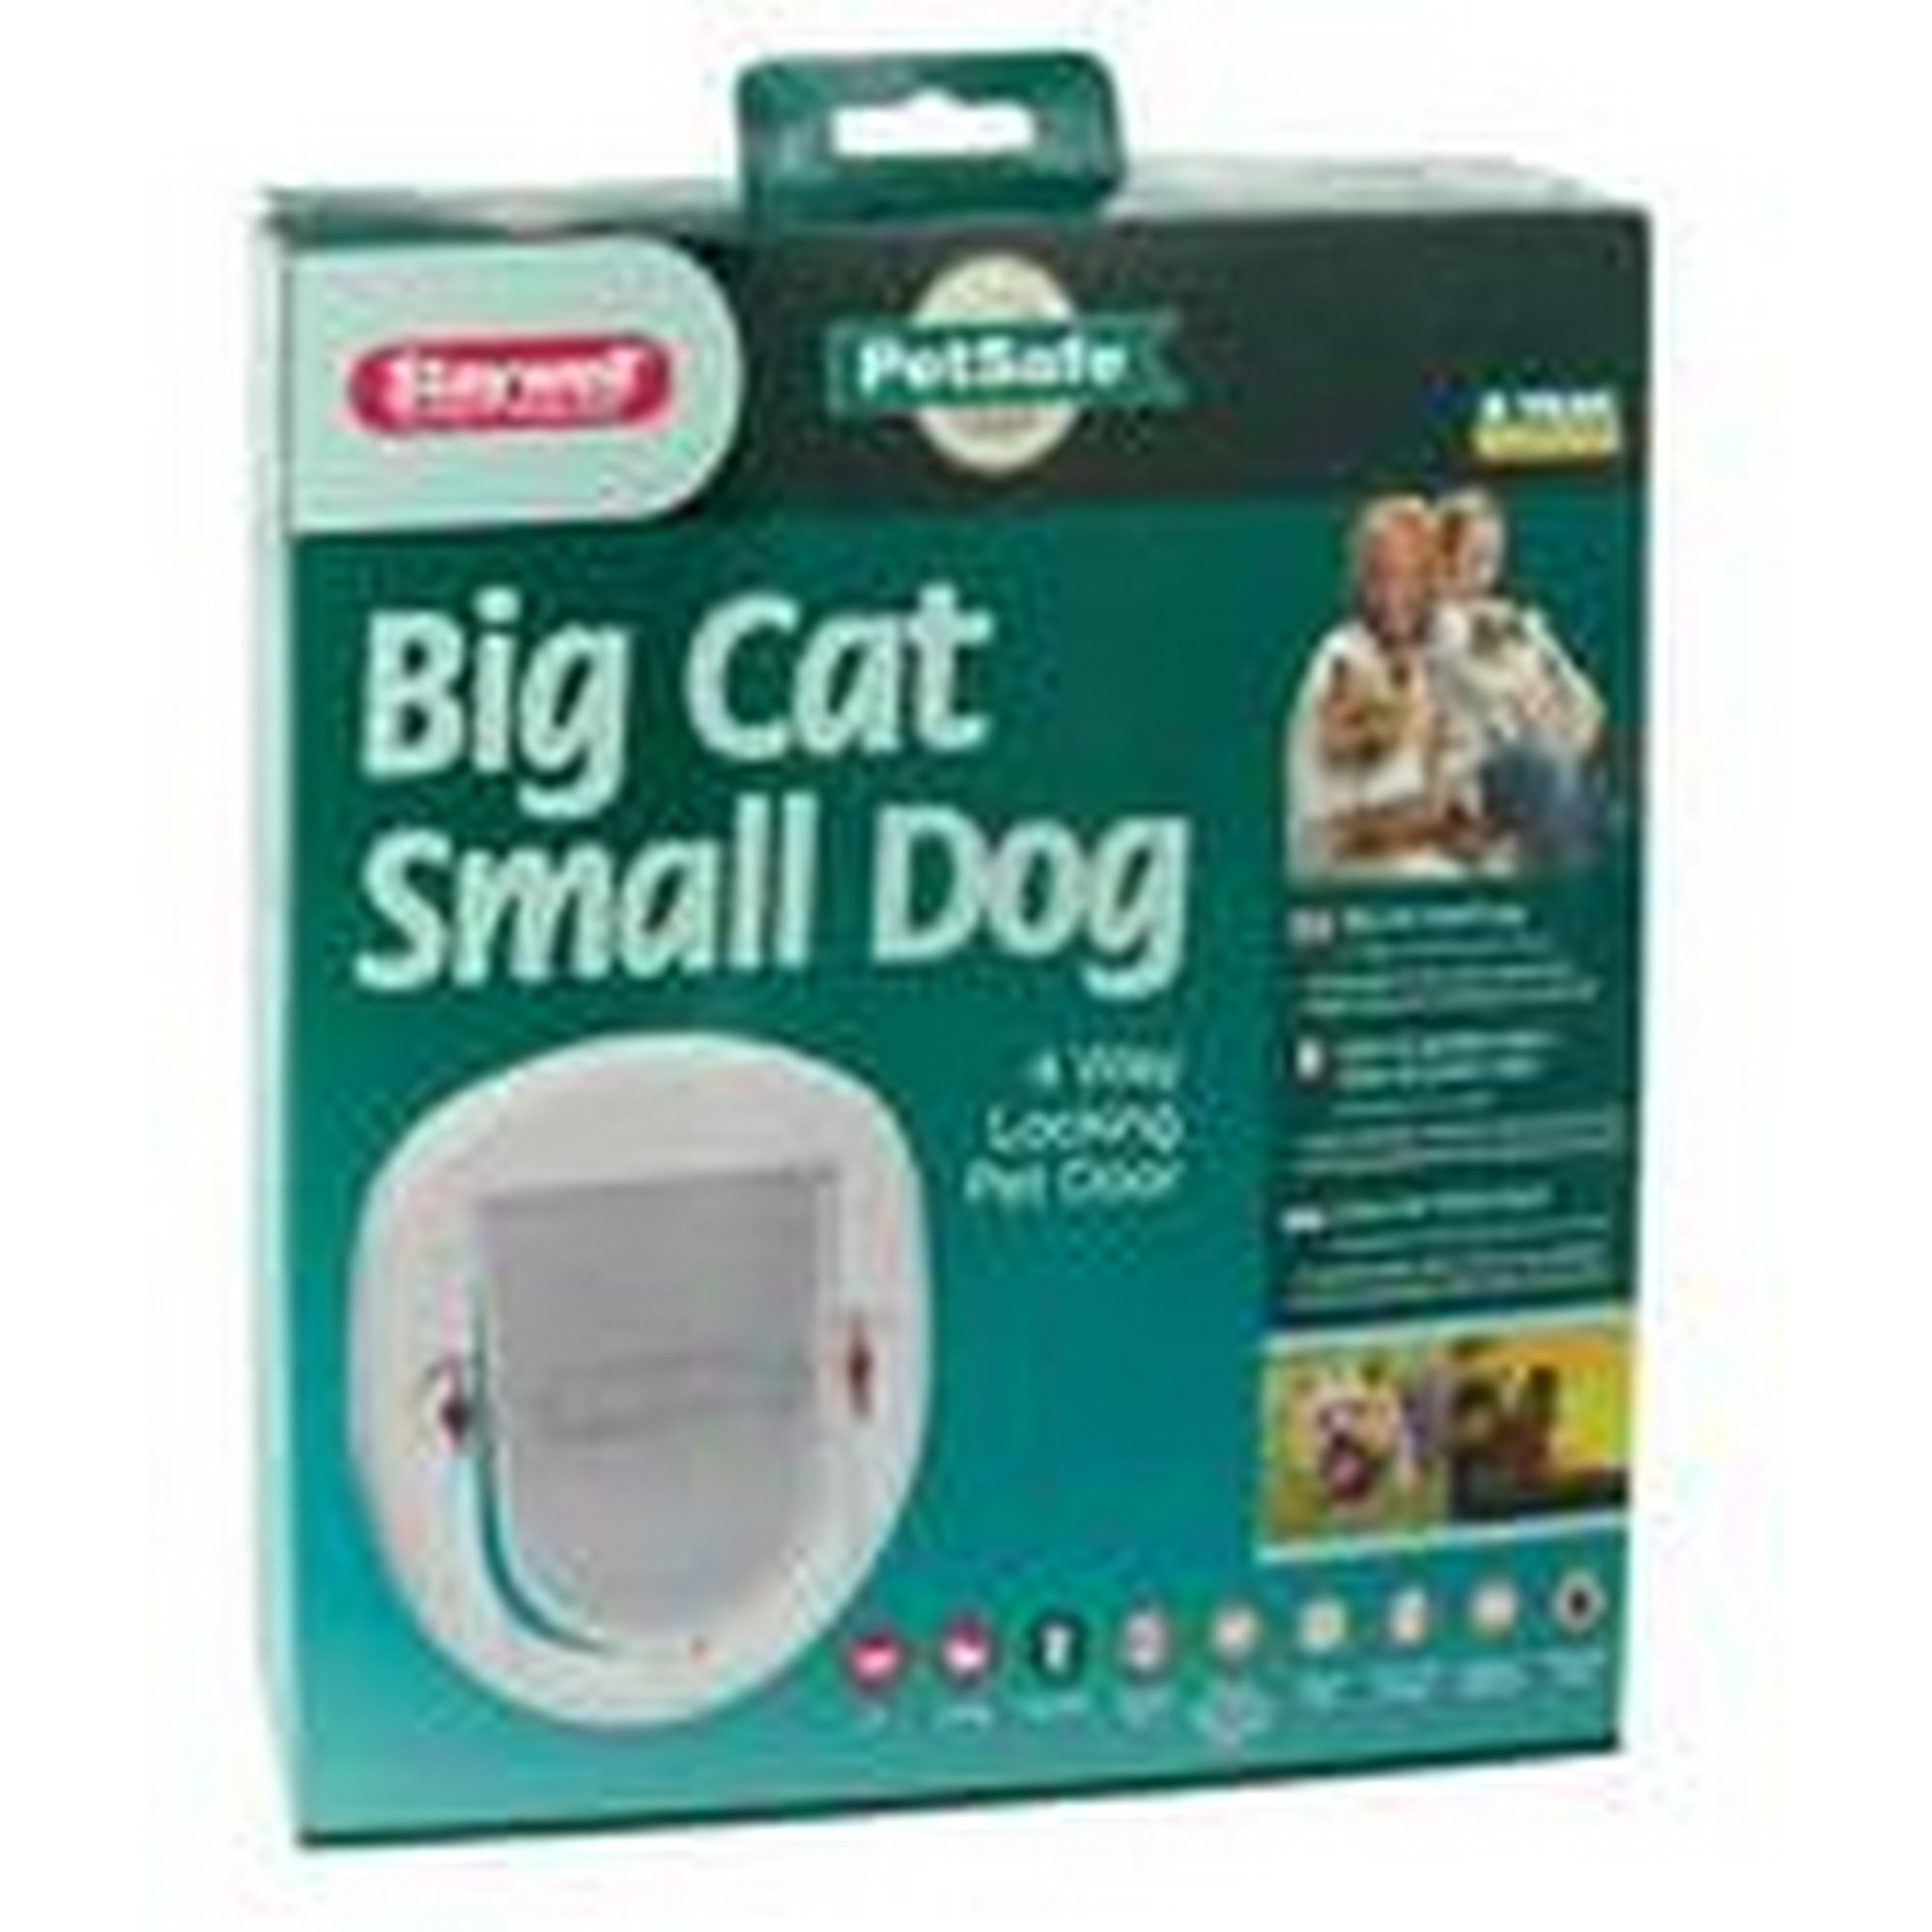 Staywell No.280 Big Cat/Small Dog Pet Door (One Size) (White) by Staywell (Image #1)